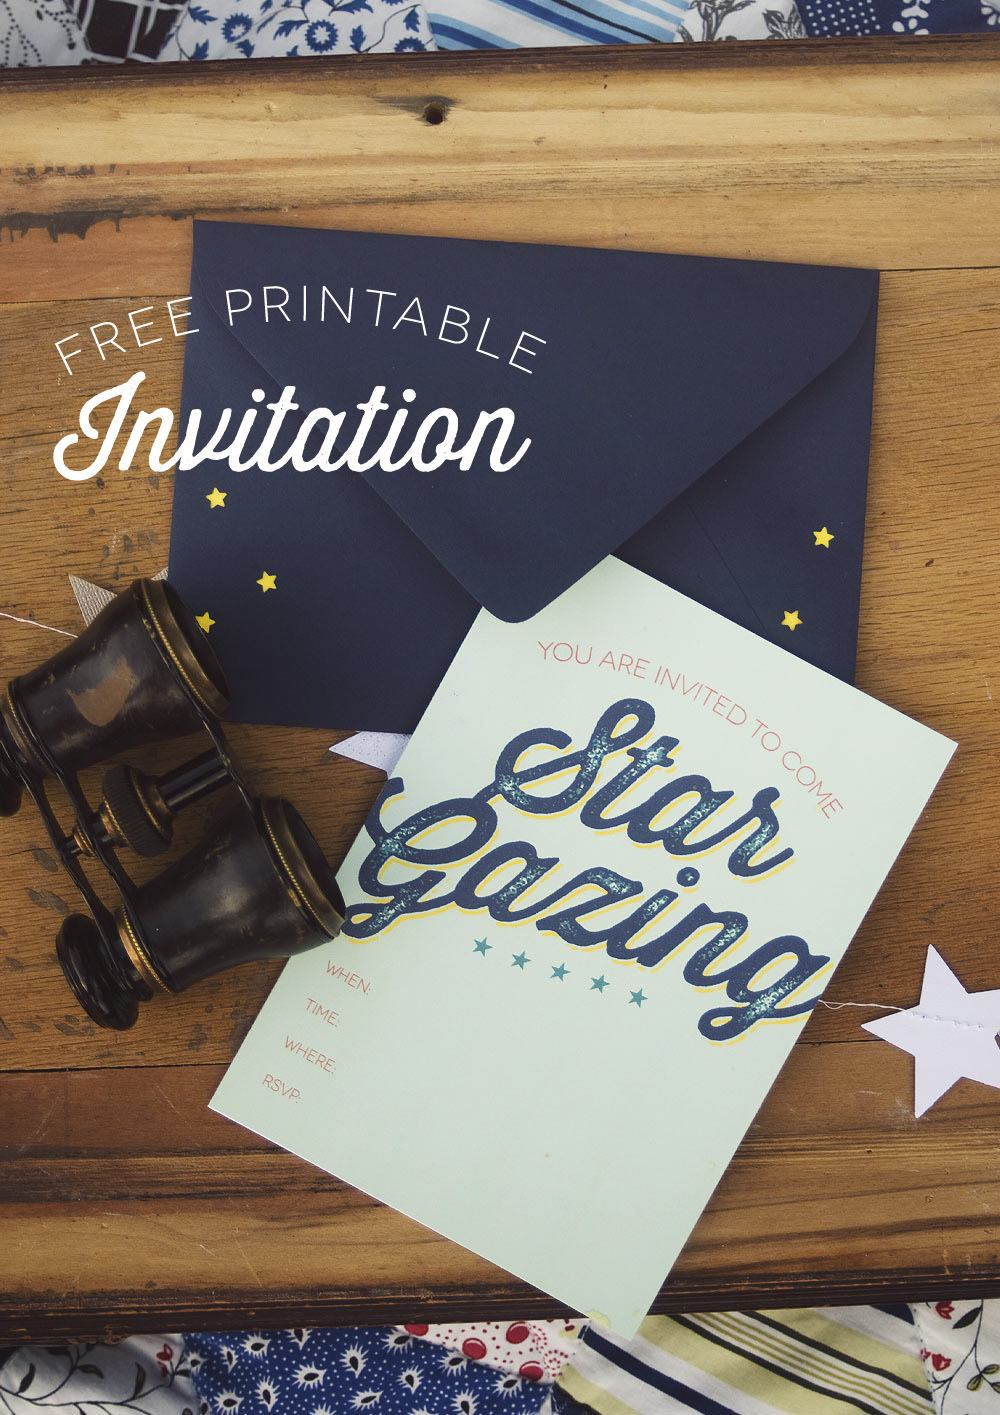 Star Gazing Party FREE Printable Invitation and Craft Tutorials